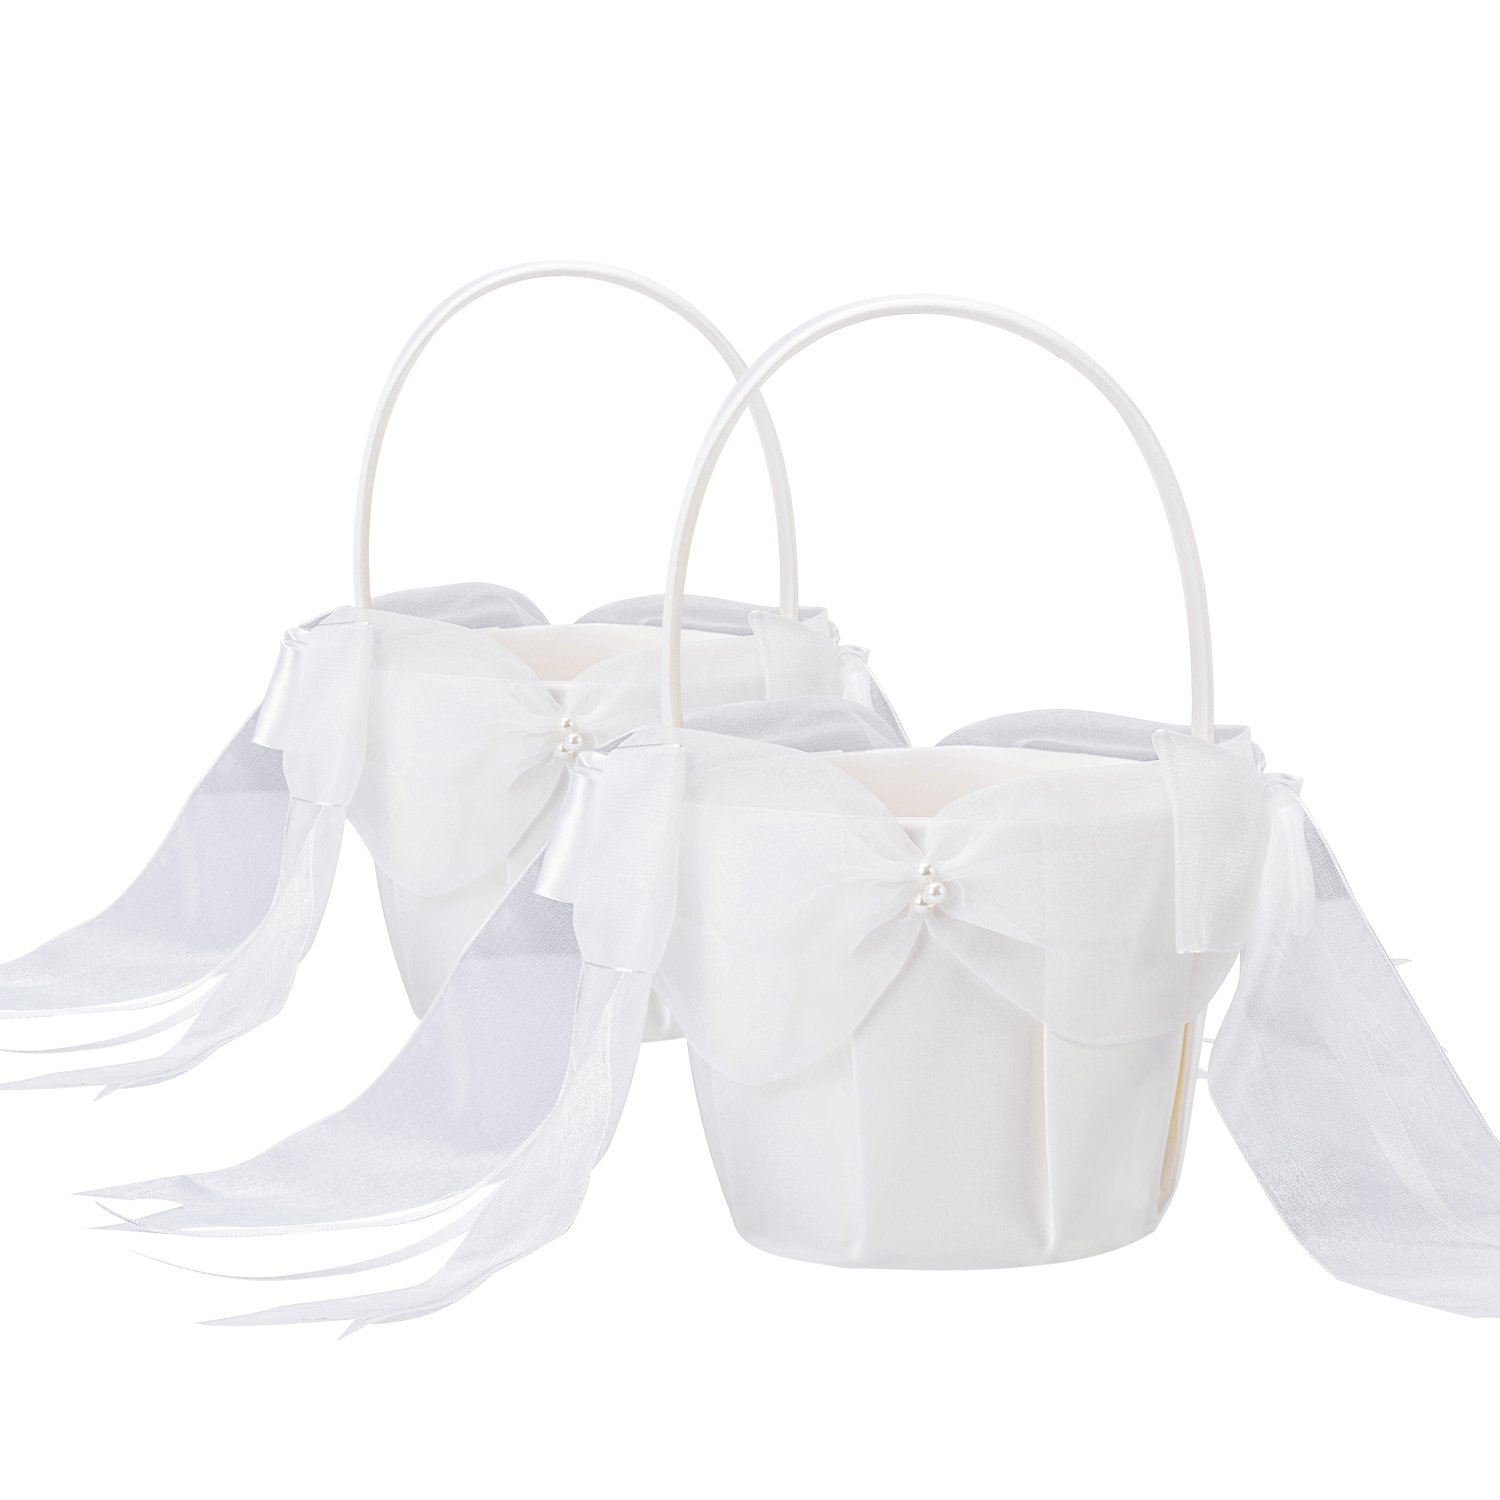 2pcsset Flower Girl Basket With Stain Bow For Wedding Ceremony